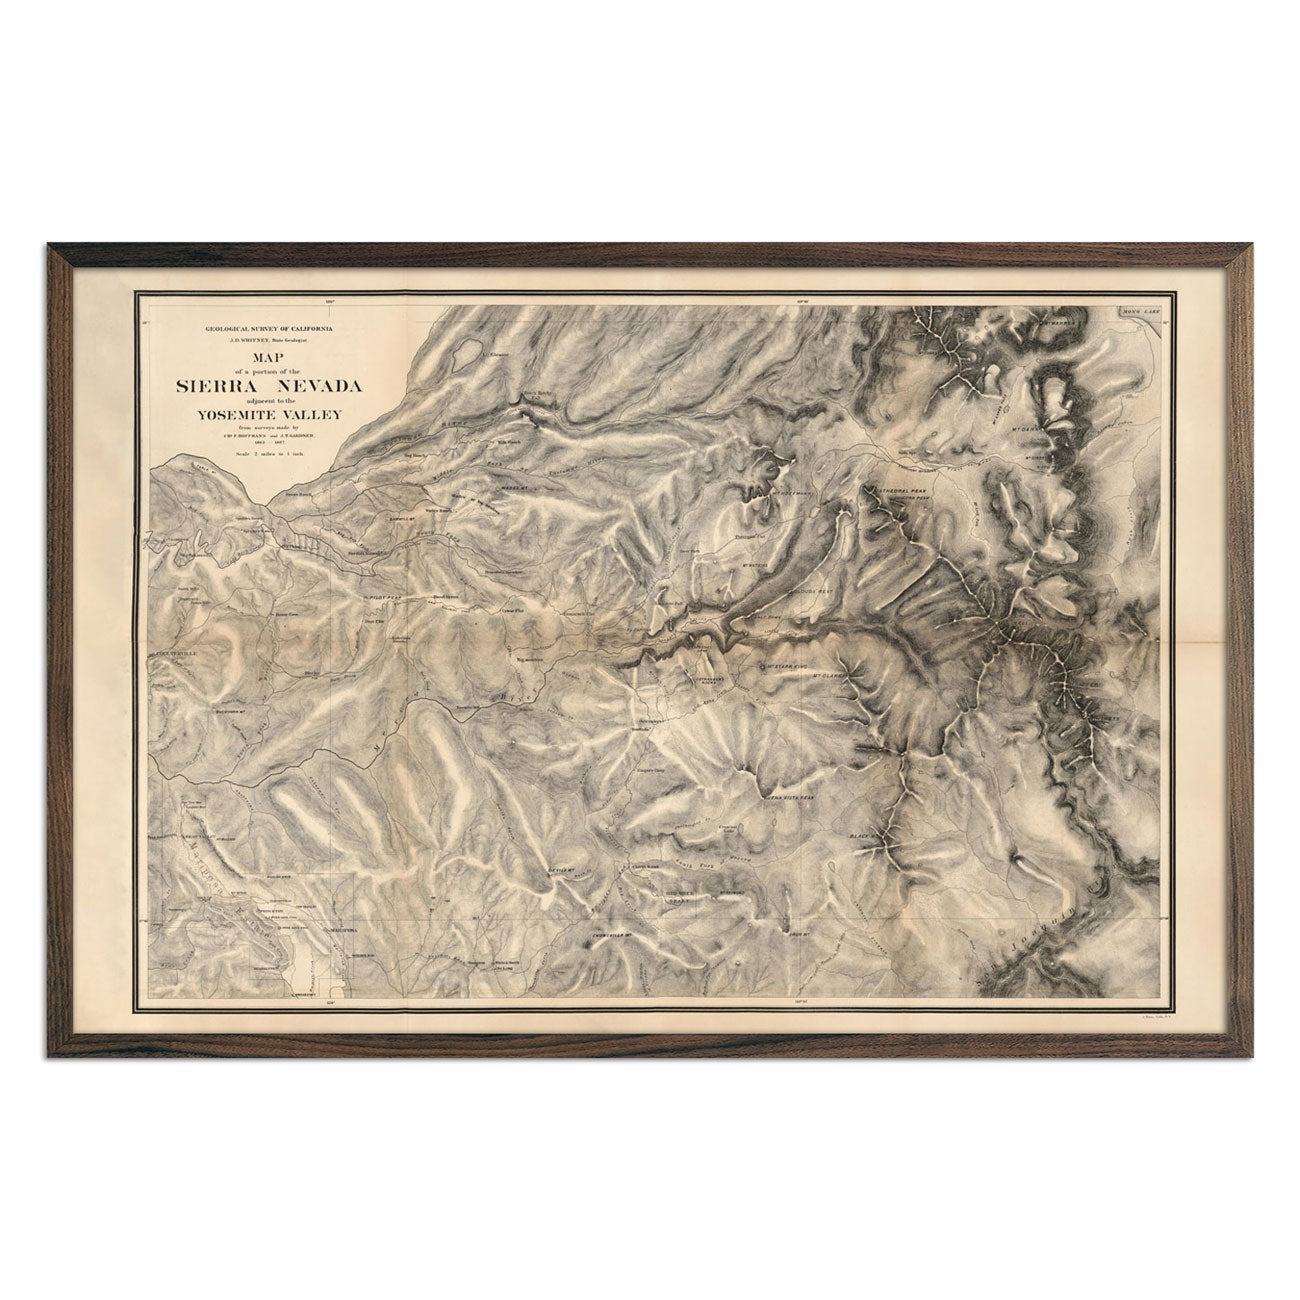 Map of Sierra Nevada 1868